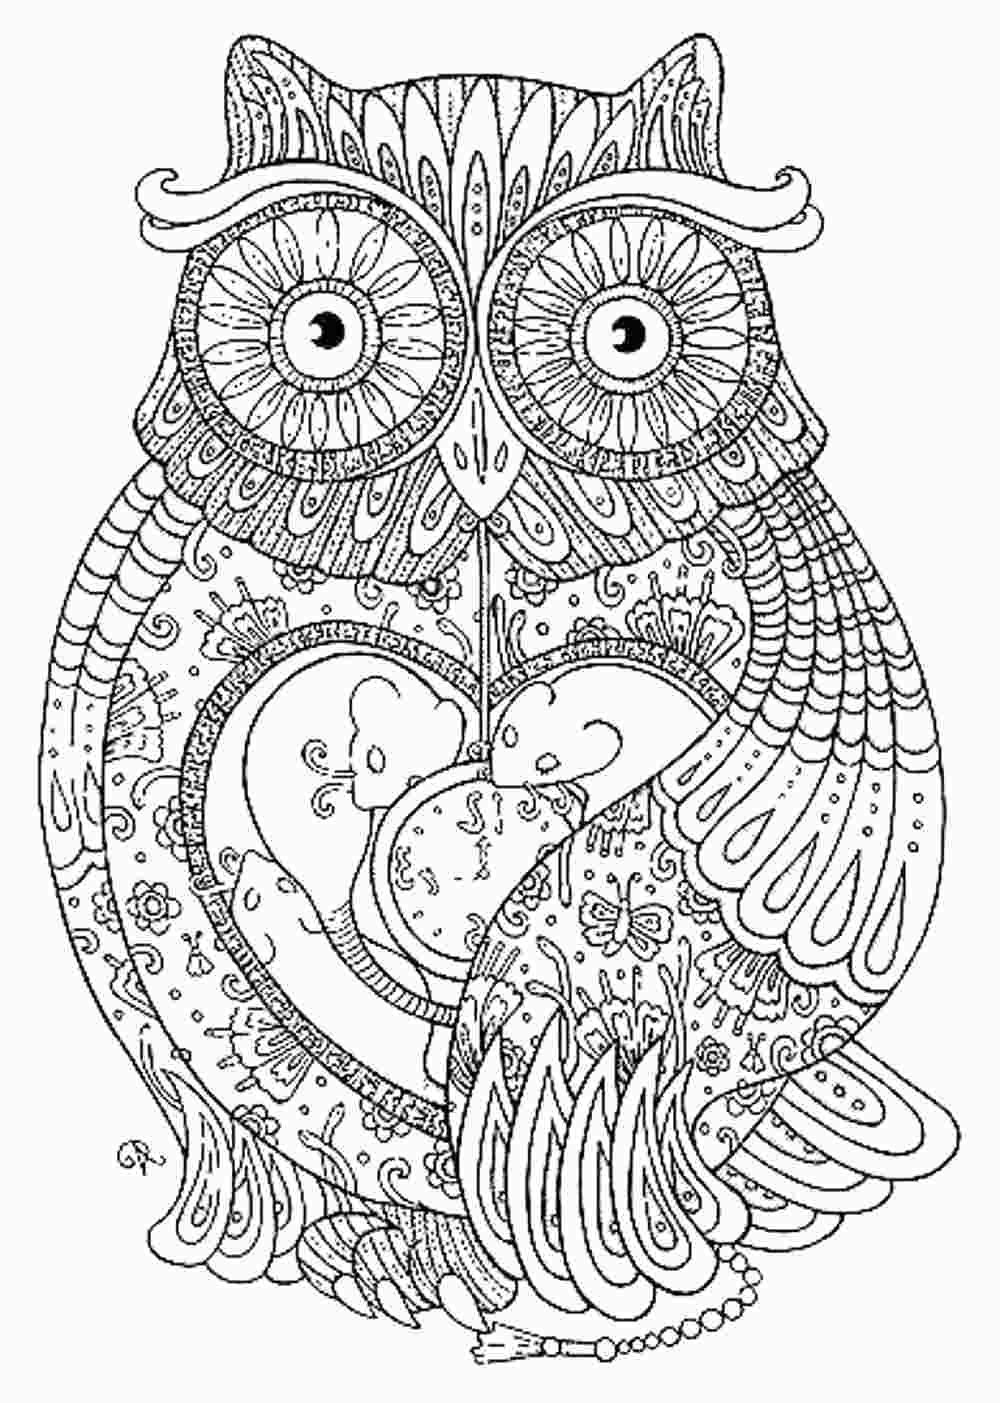 1000x1403 Best Of Owl Coloring Book Pages Coloring Pages Coloring Pages